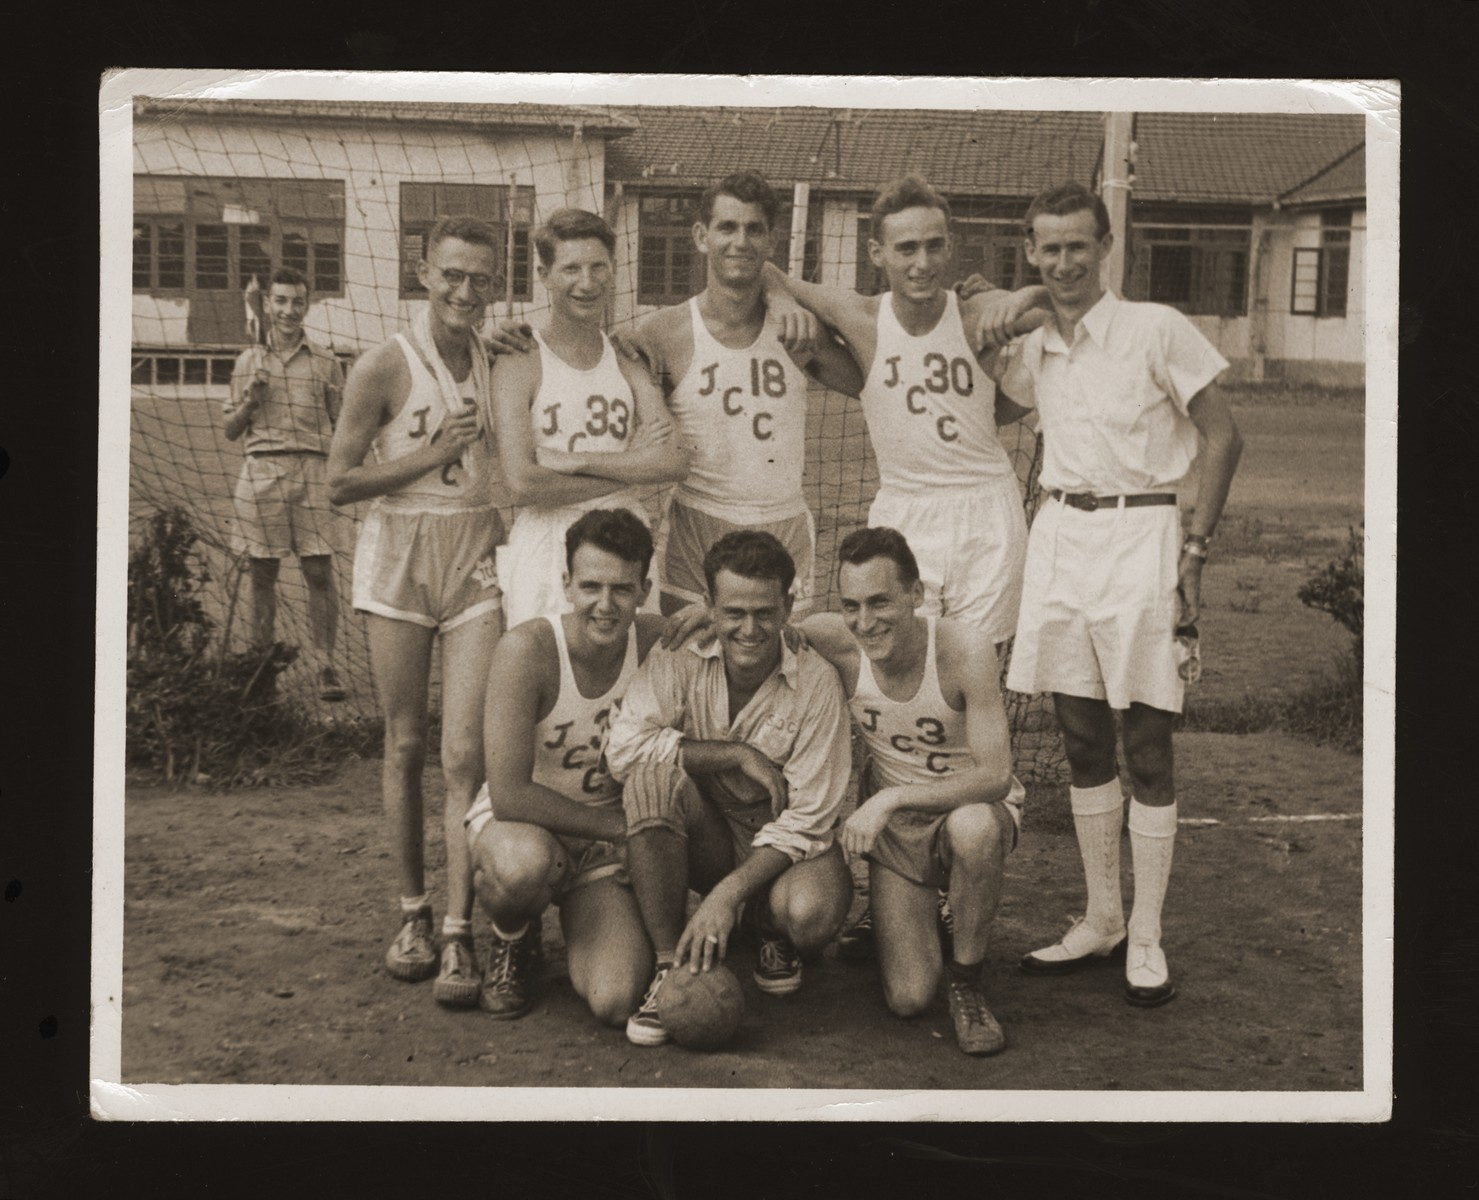 Group portrait of a Jewish sports team in Shanghai.